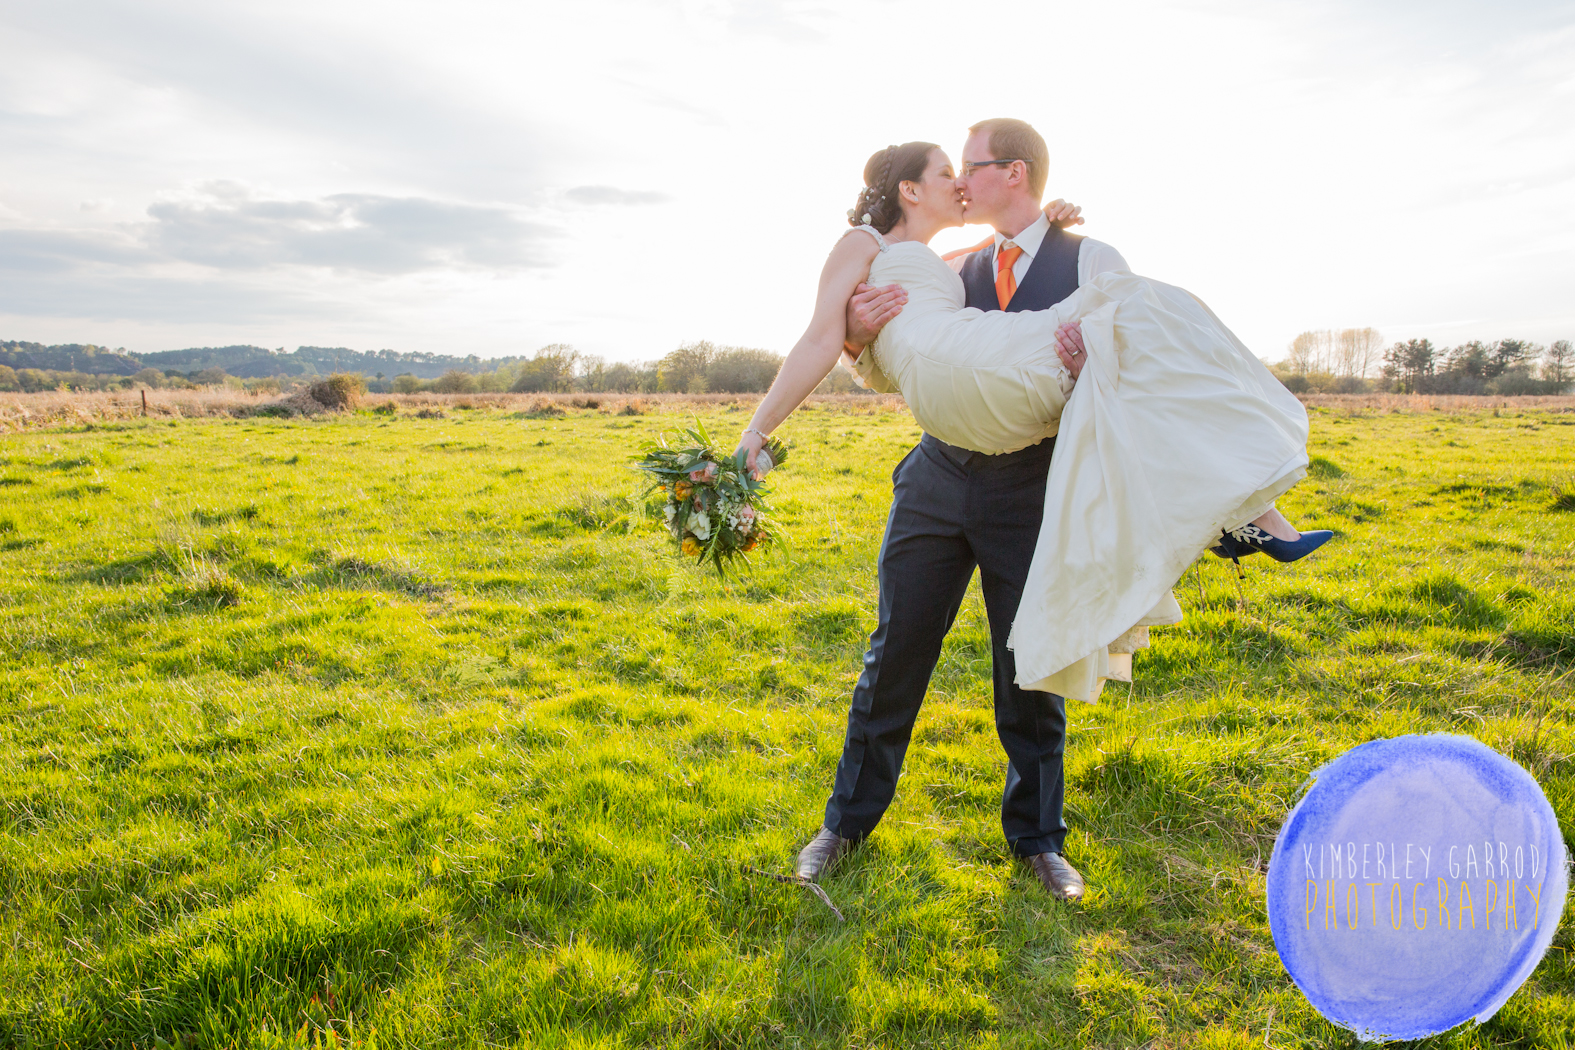 Sopley Mill wedding photographer kimberley garrod-6